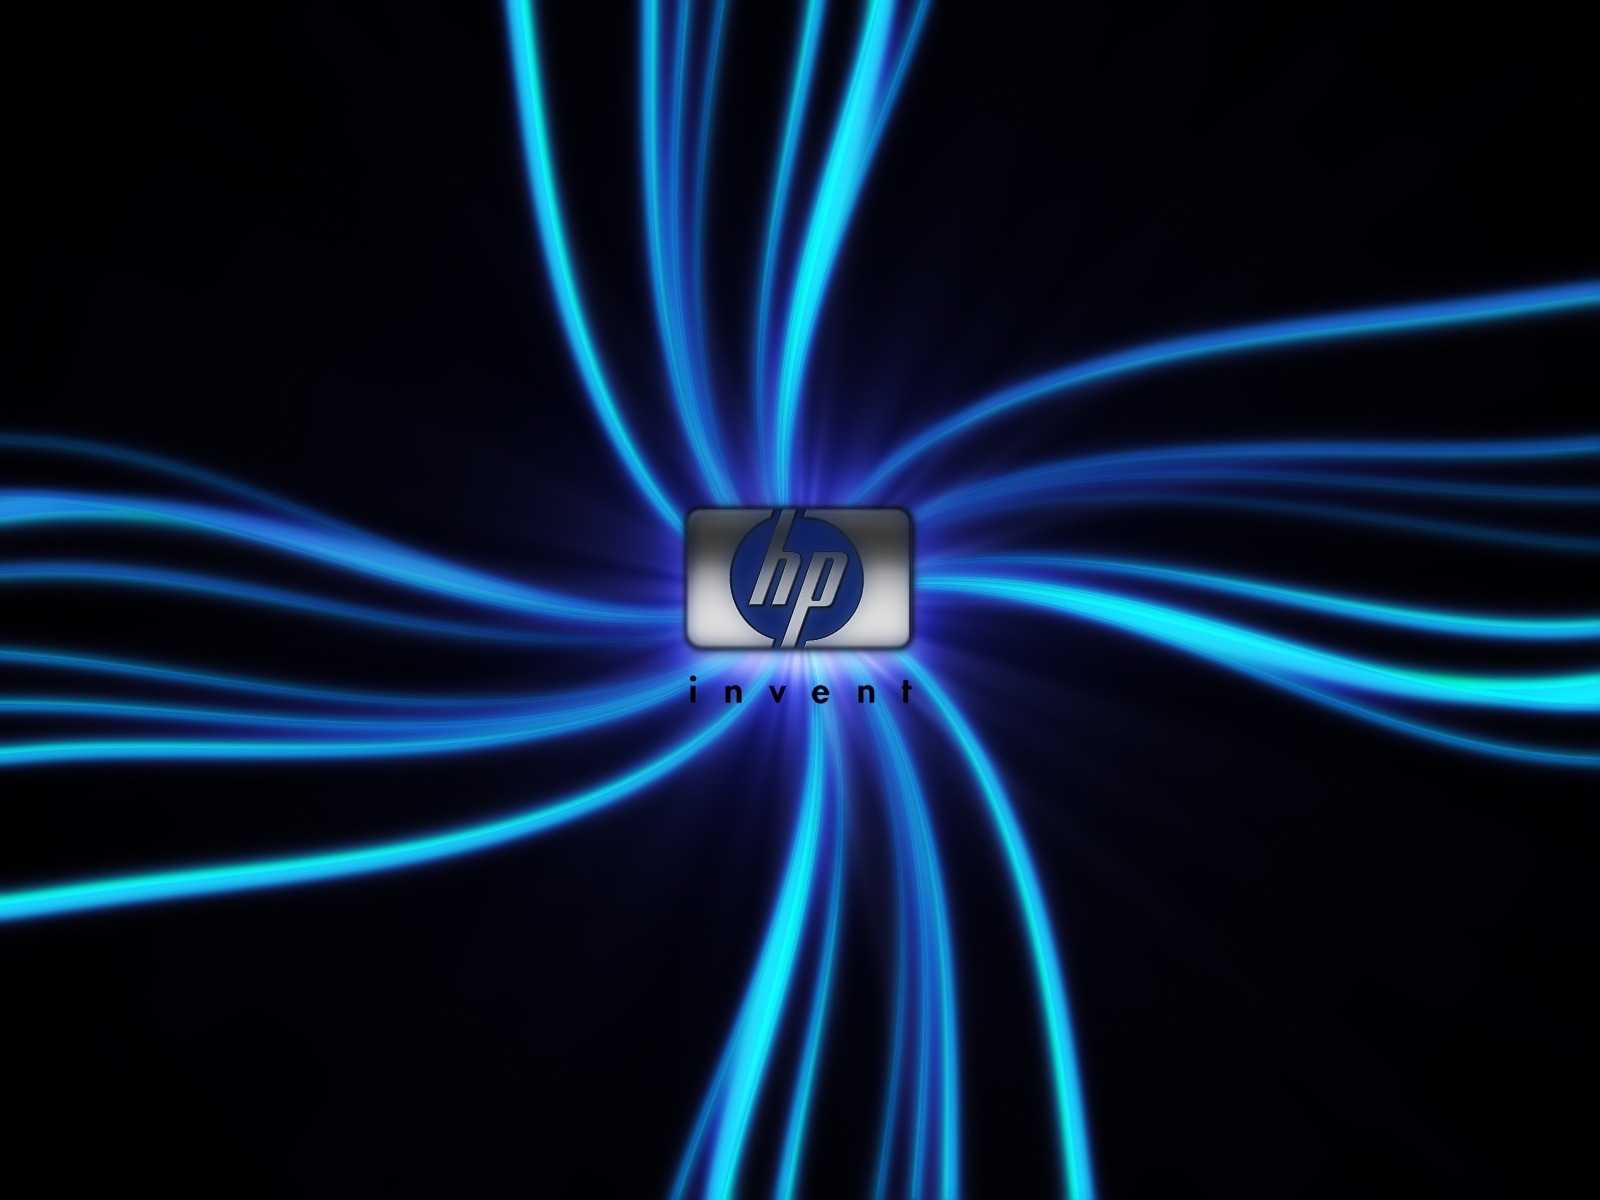 Alienware Animated Wallpaper Hp Invent Blue Wallpapers Hp Invent Blue Stock Photos